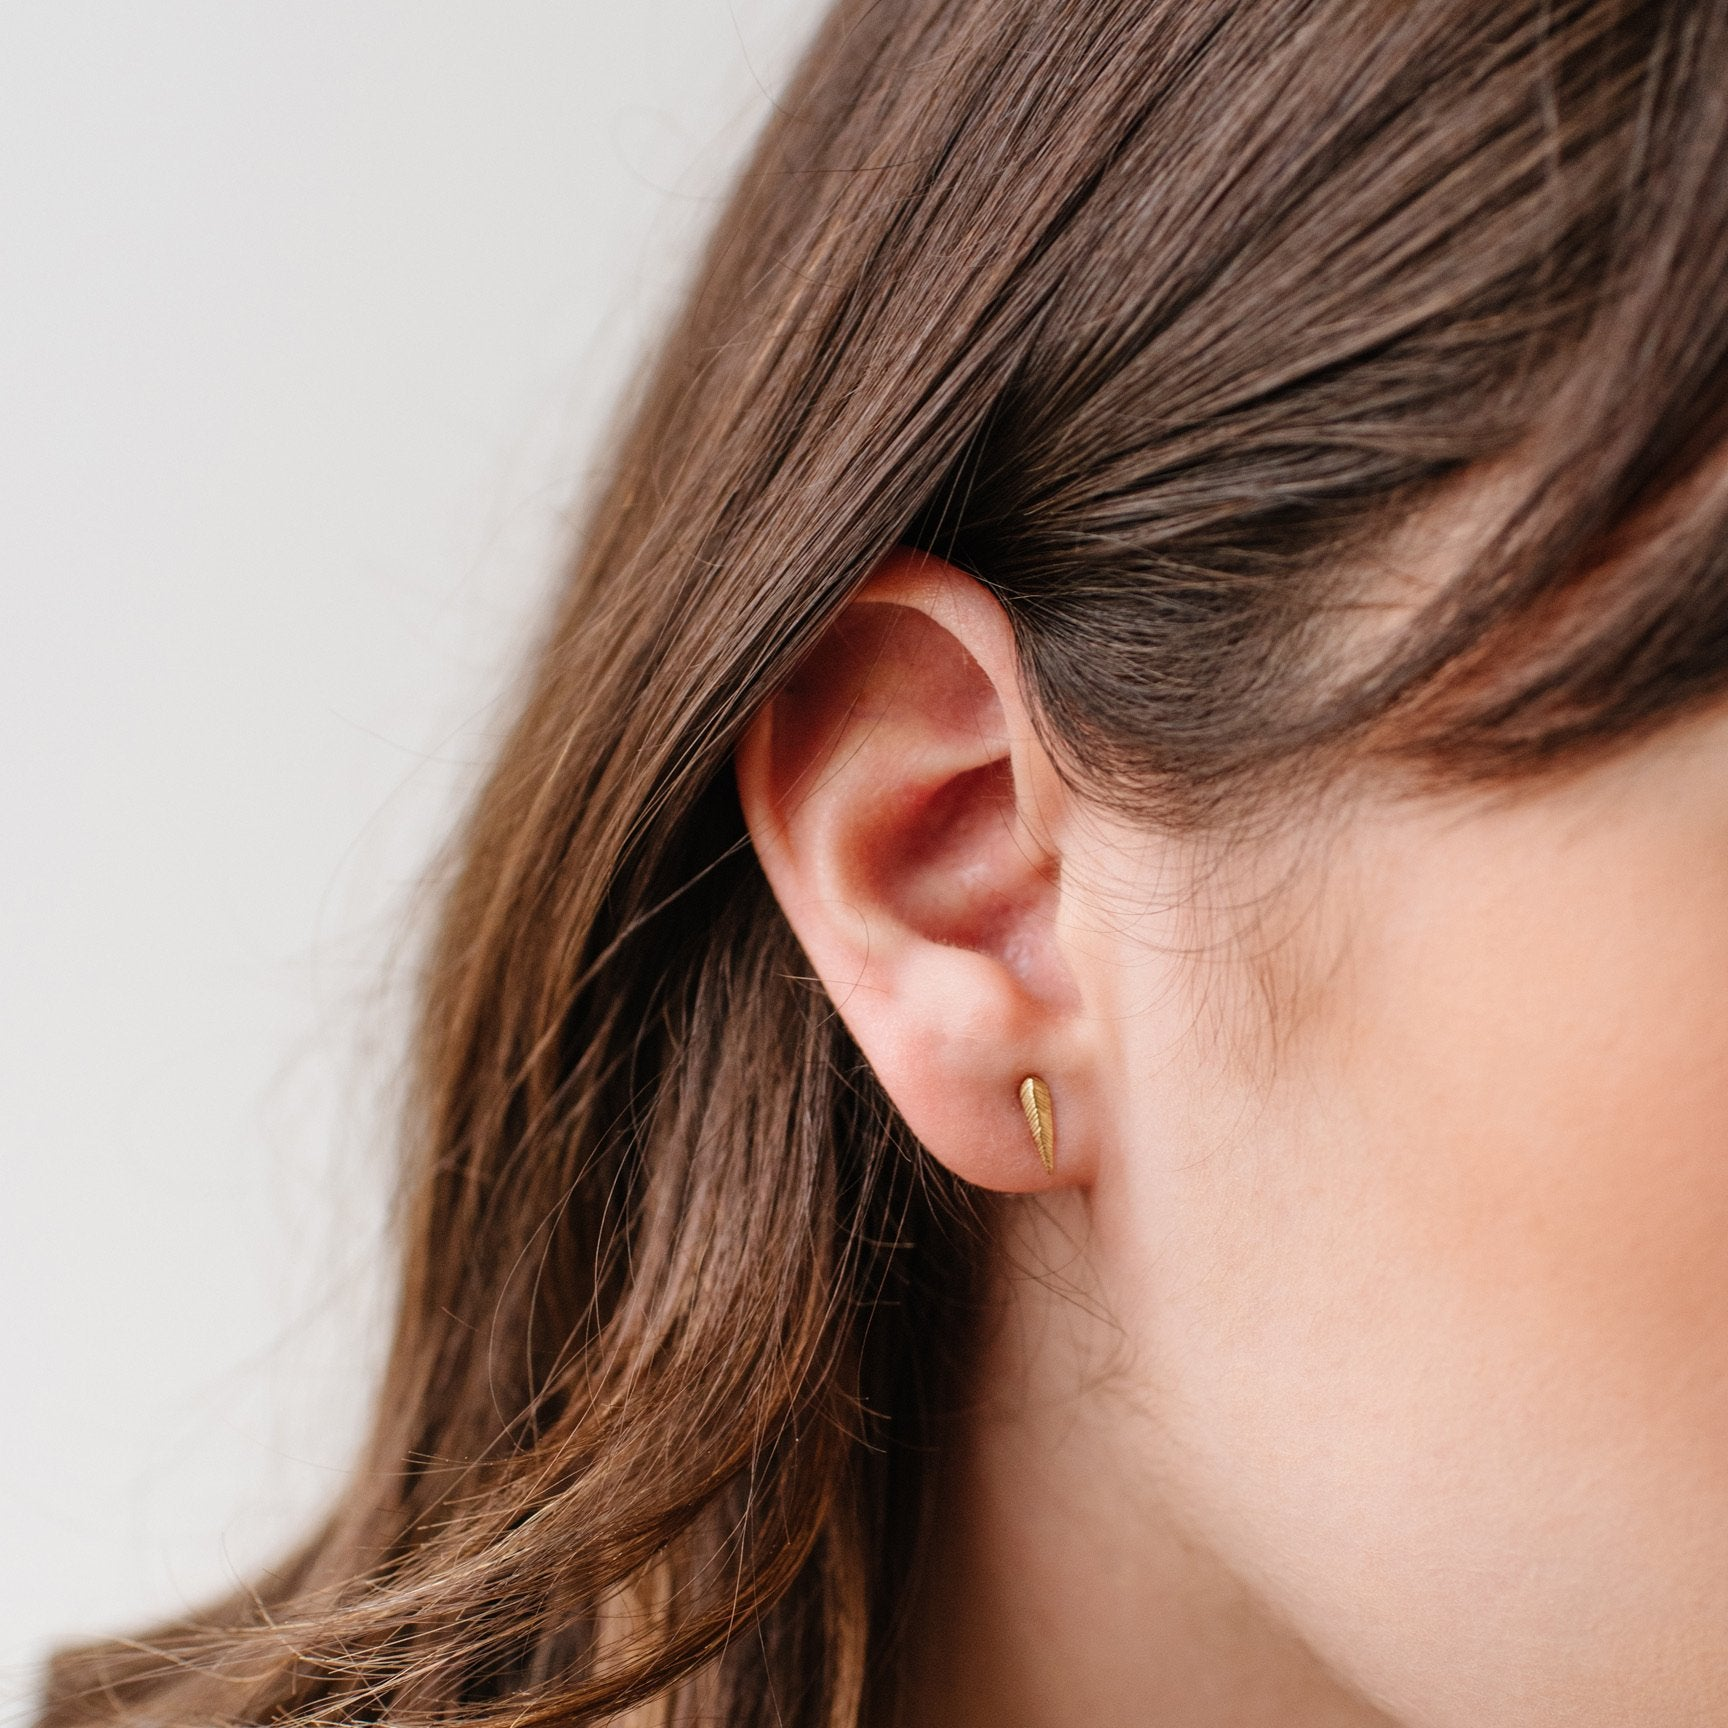 MINI BRAVE STUD EARRINGS - GOLD - SO PRETTY CARA COTTER